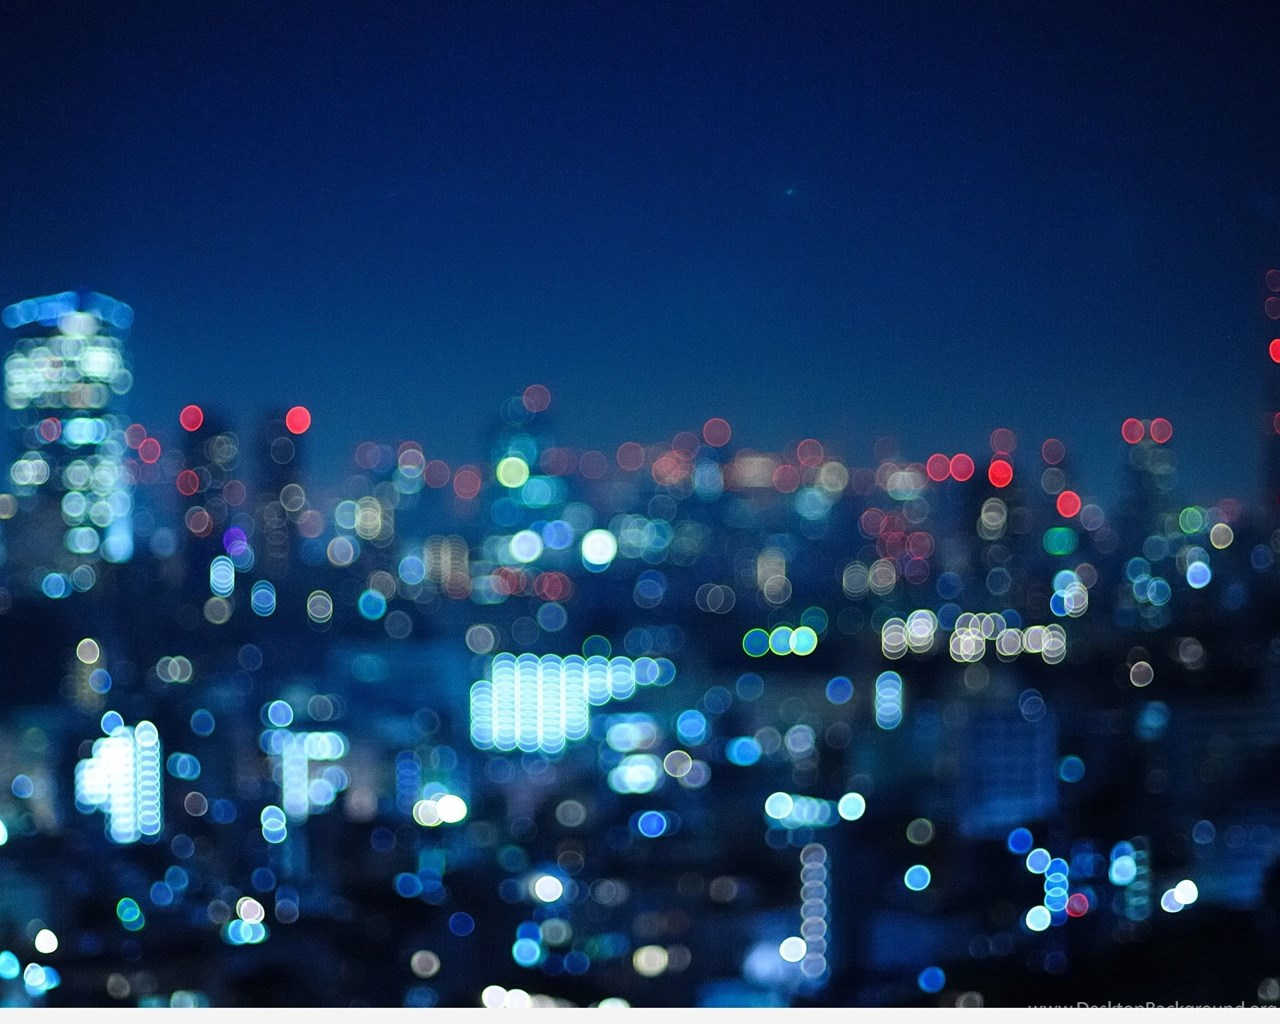 Android Hd Wallpapers For Mobile: City Wallpaper Design Ideas Suffer Holland Night Hd